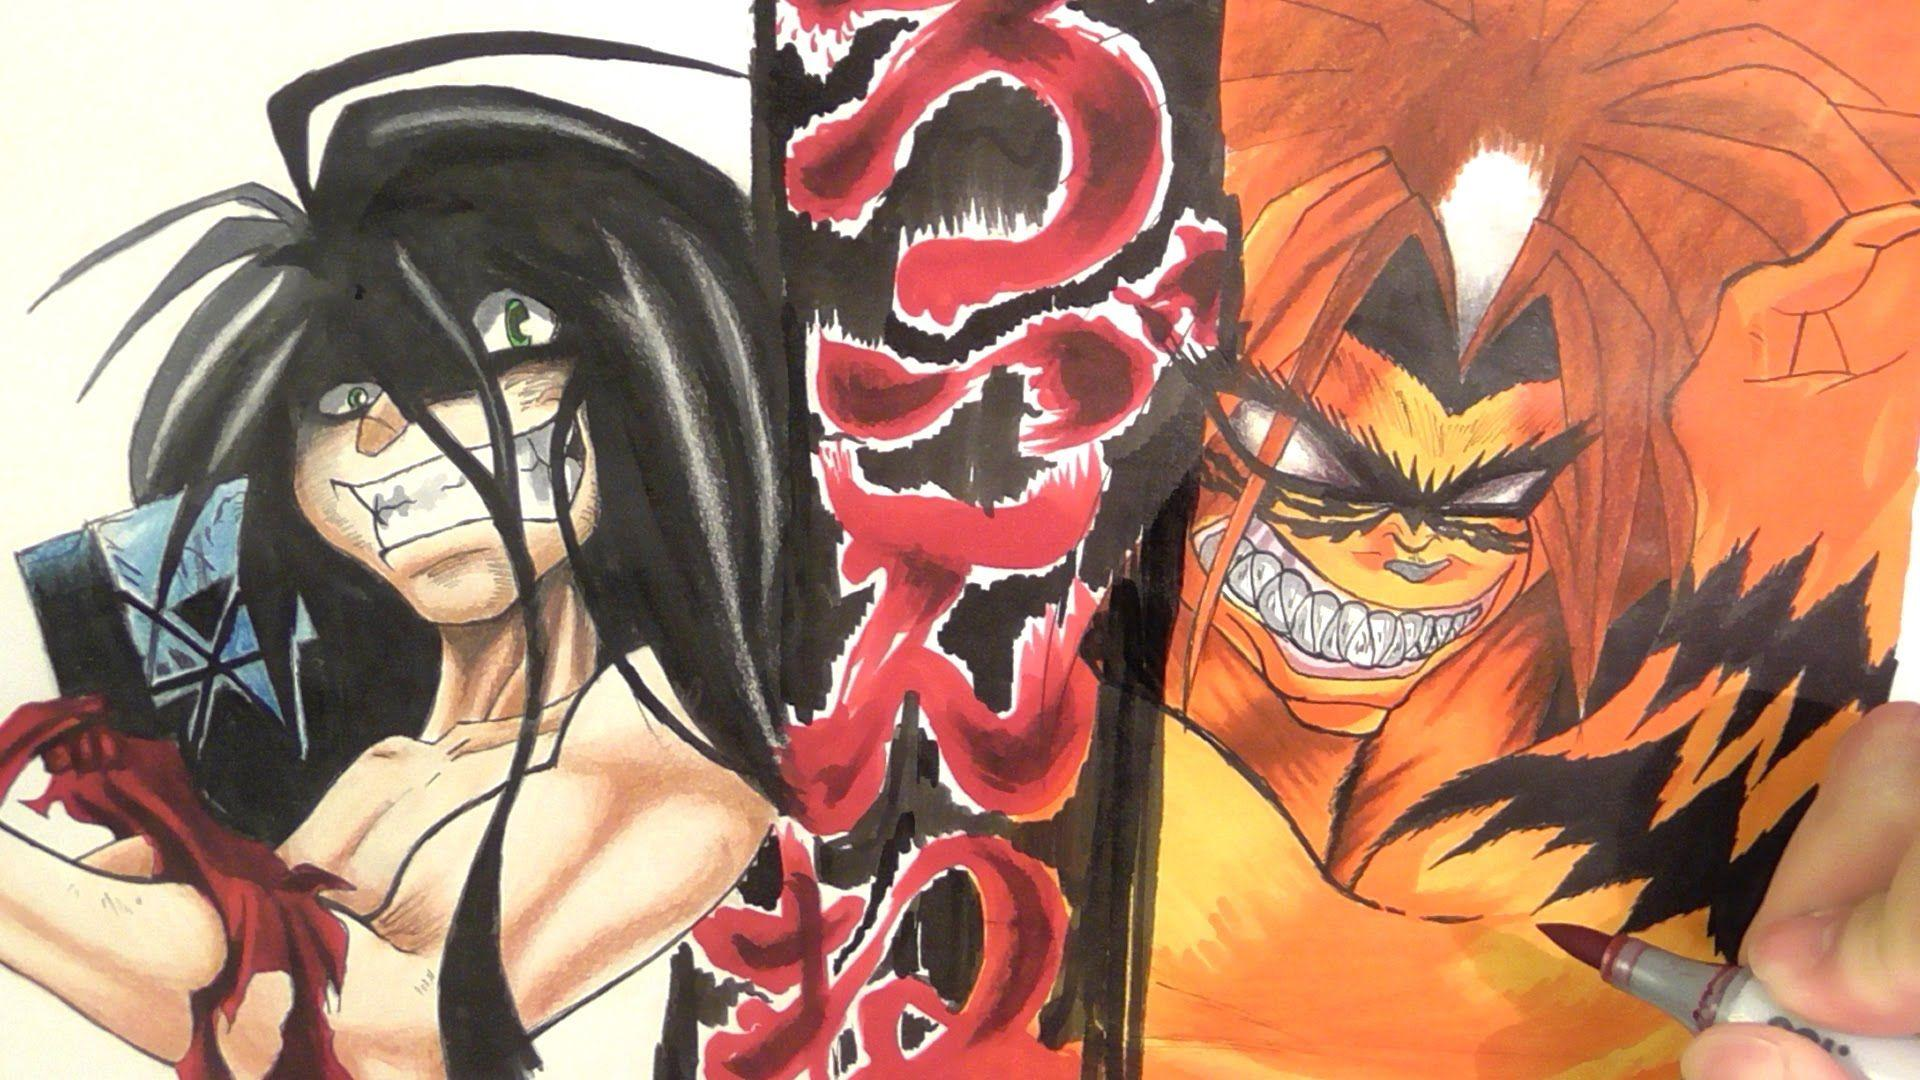 Ushio & Tora wallpapers, Anime, HQ Ushio & Tora pictures